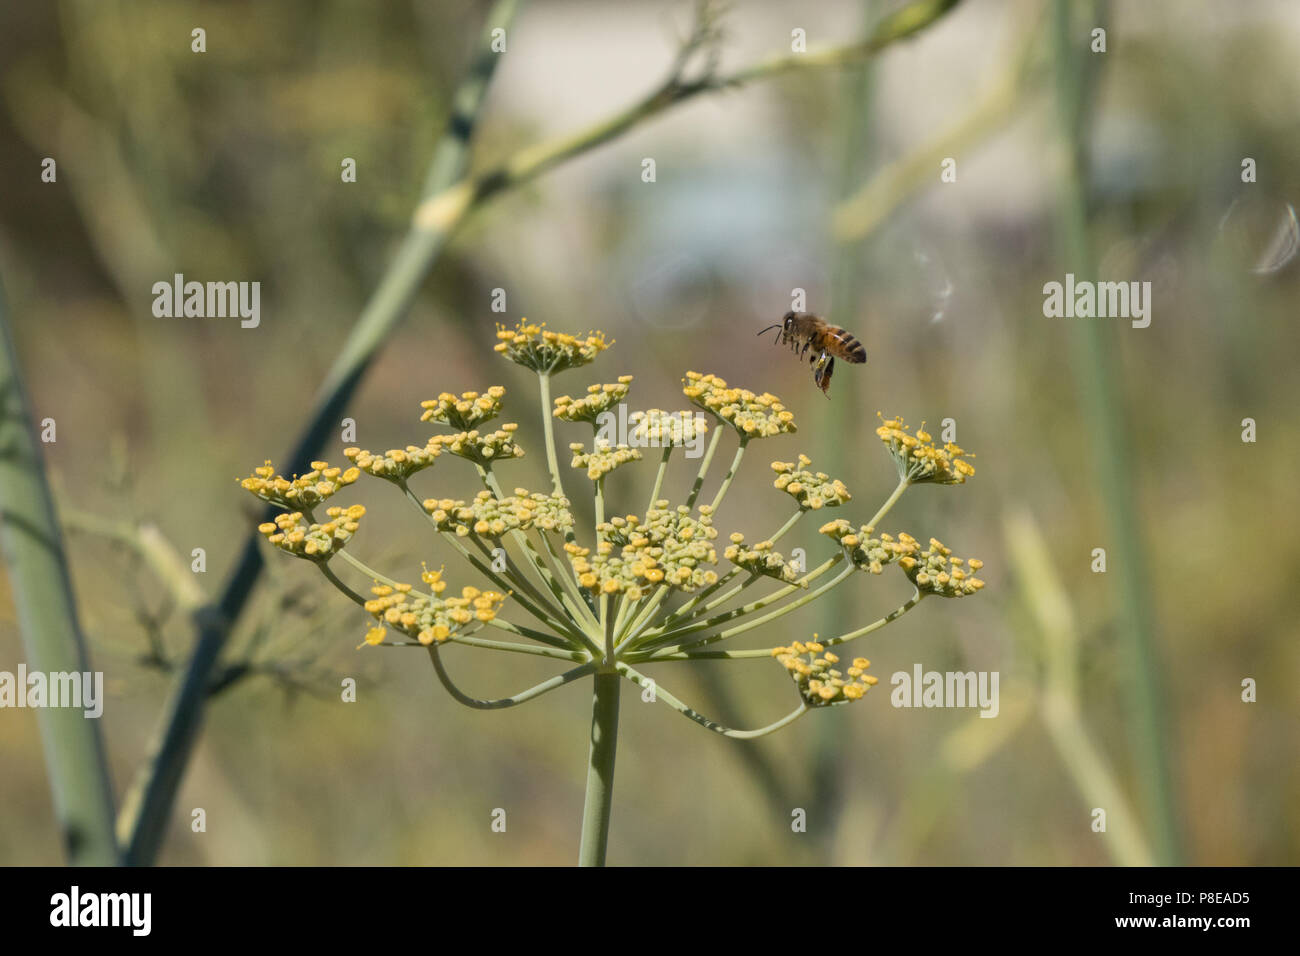 Honey bees pollinatiing fennel flowers. - Stock Image